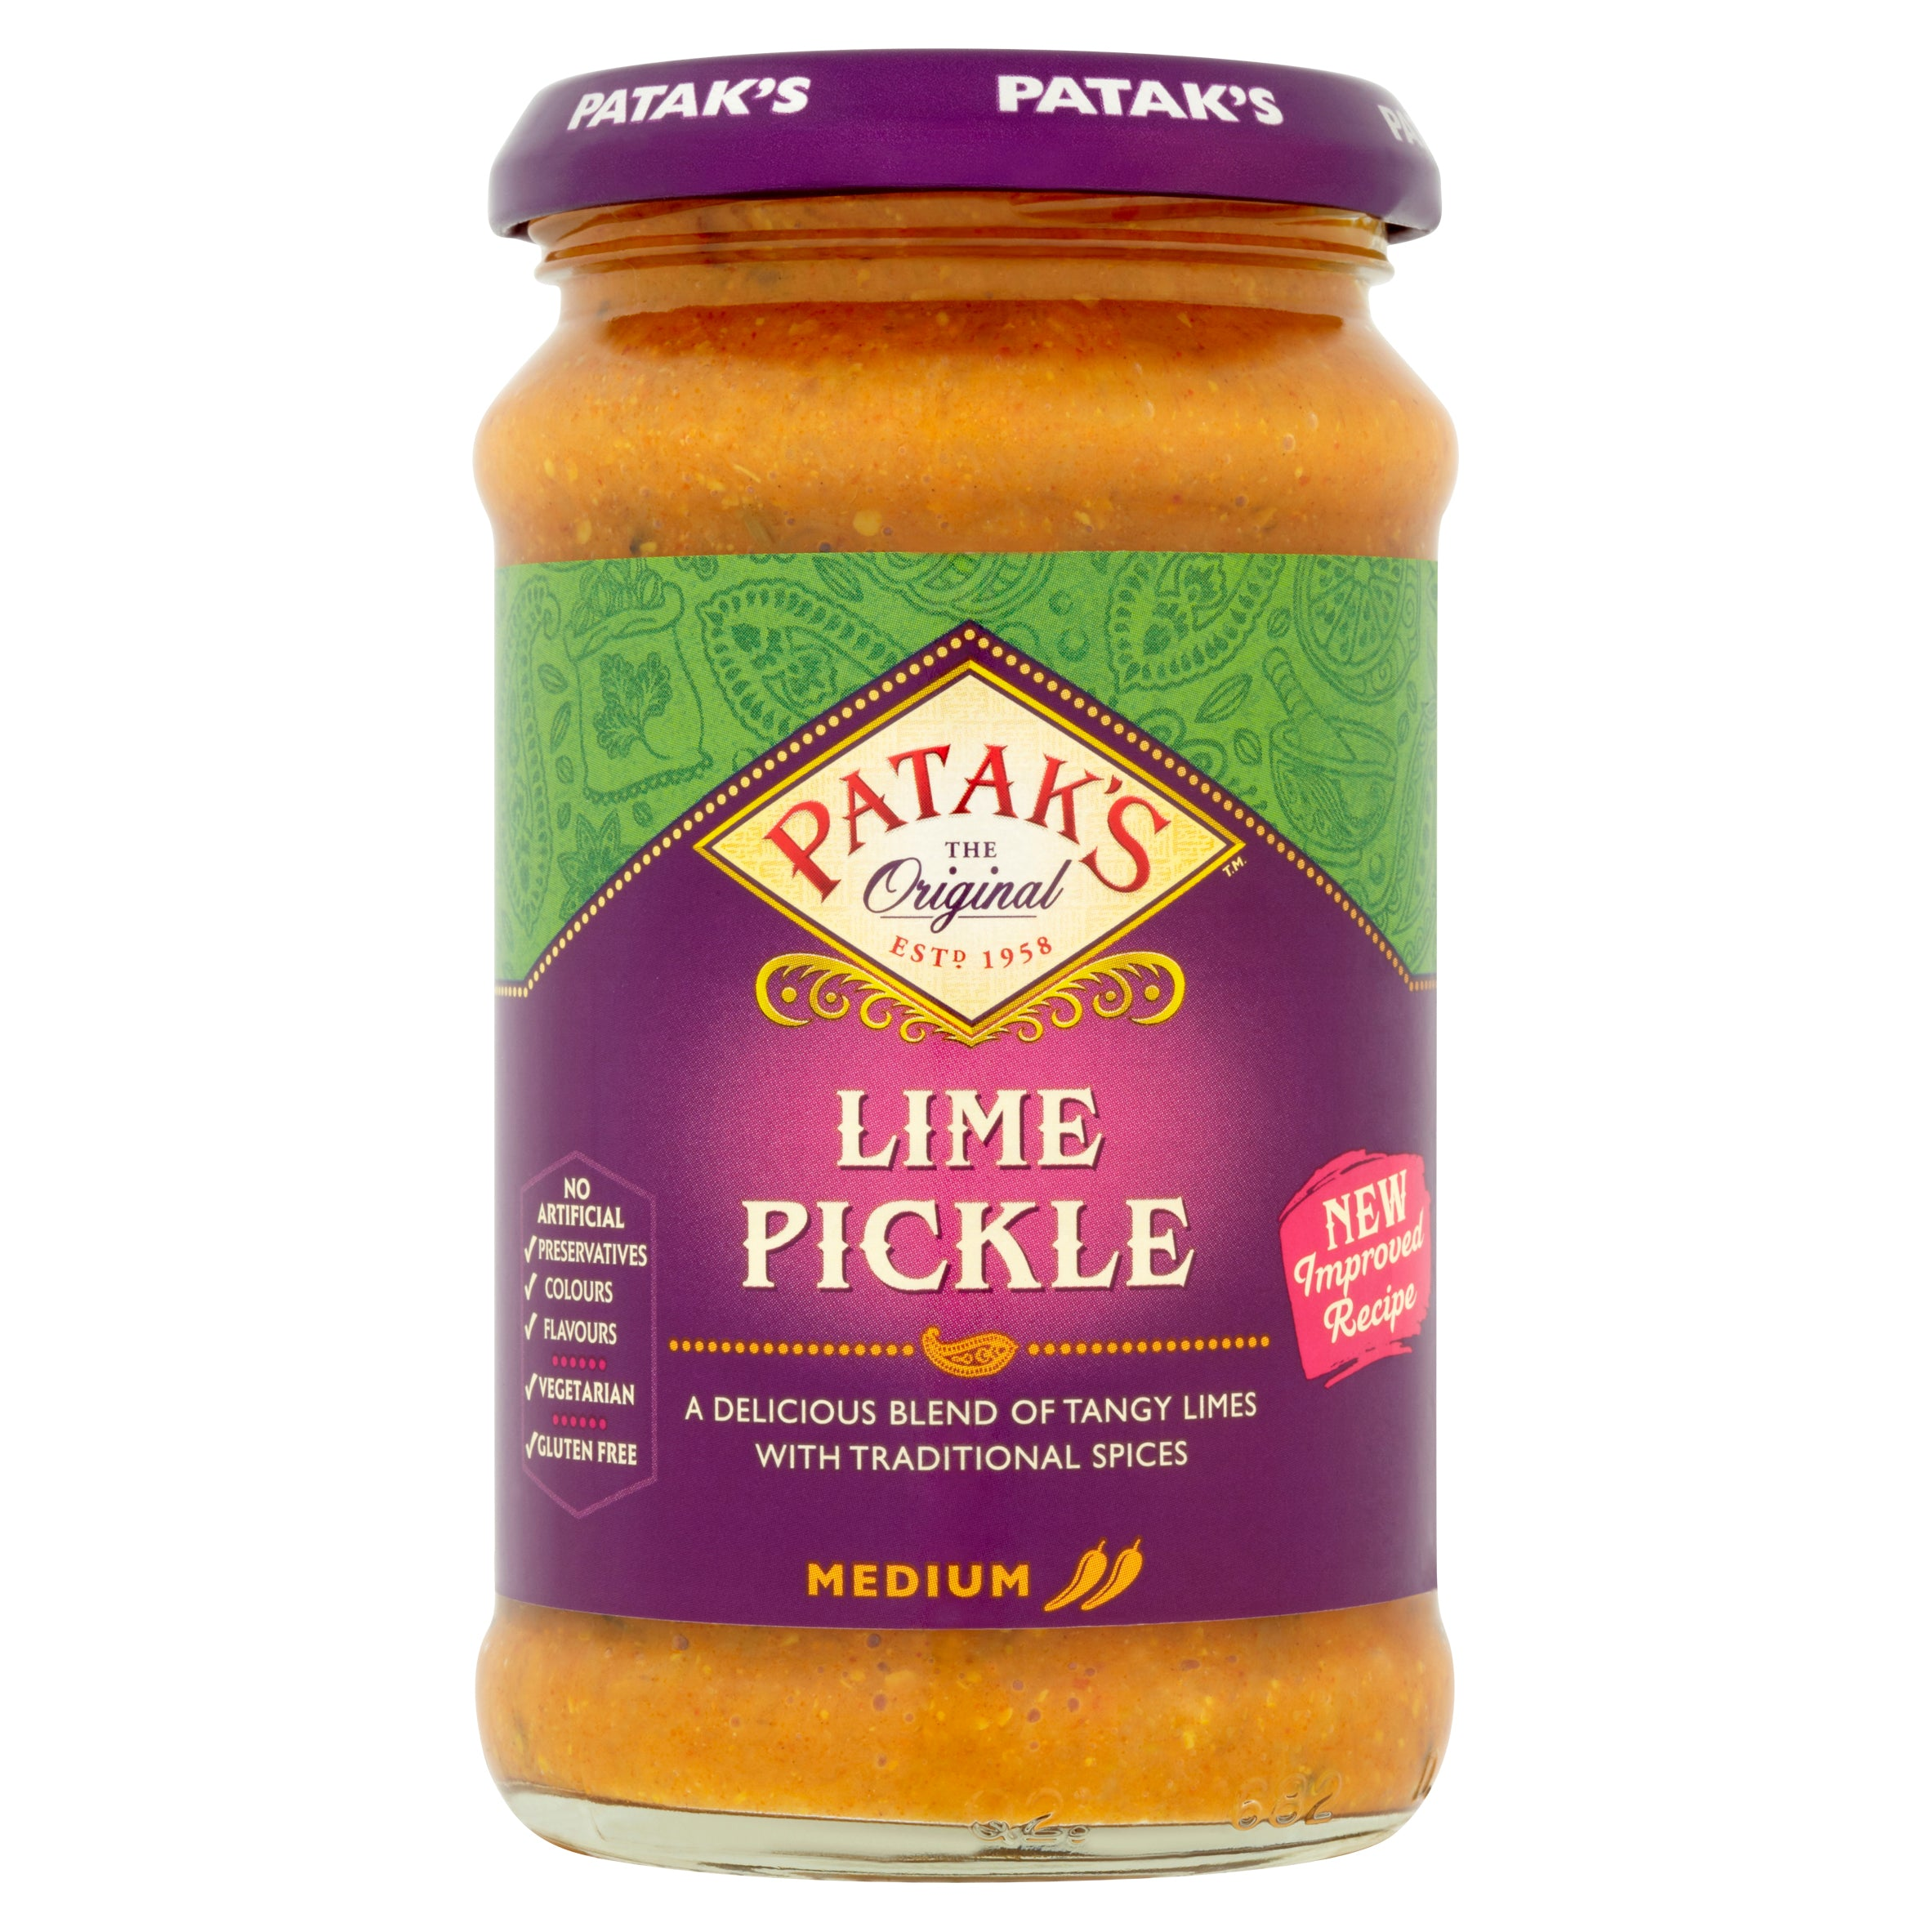 Lime Pickle (Medium) 283g by Patak's